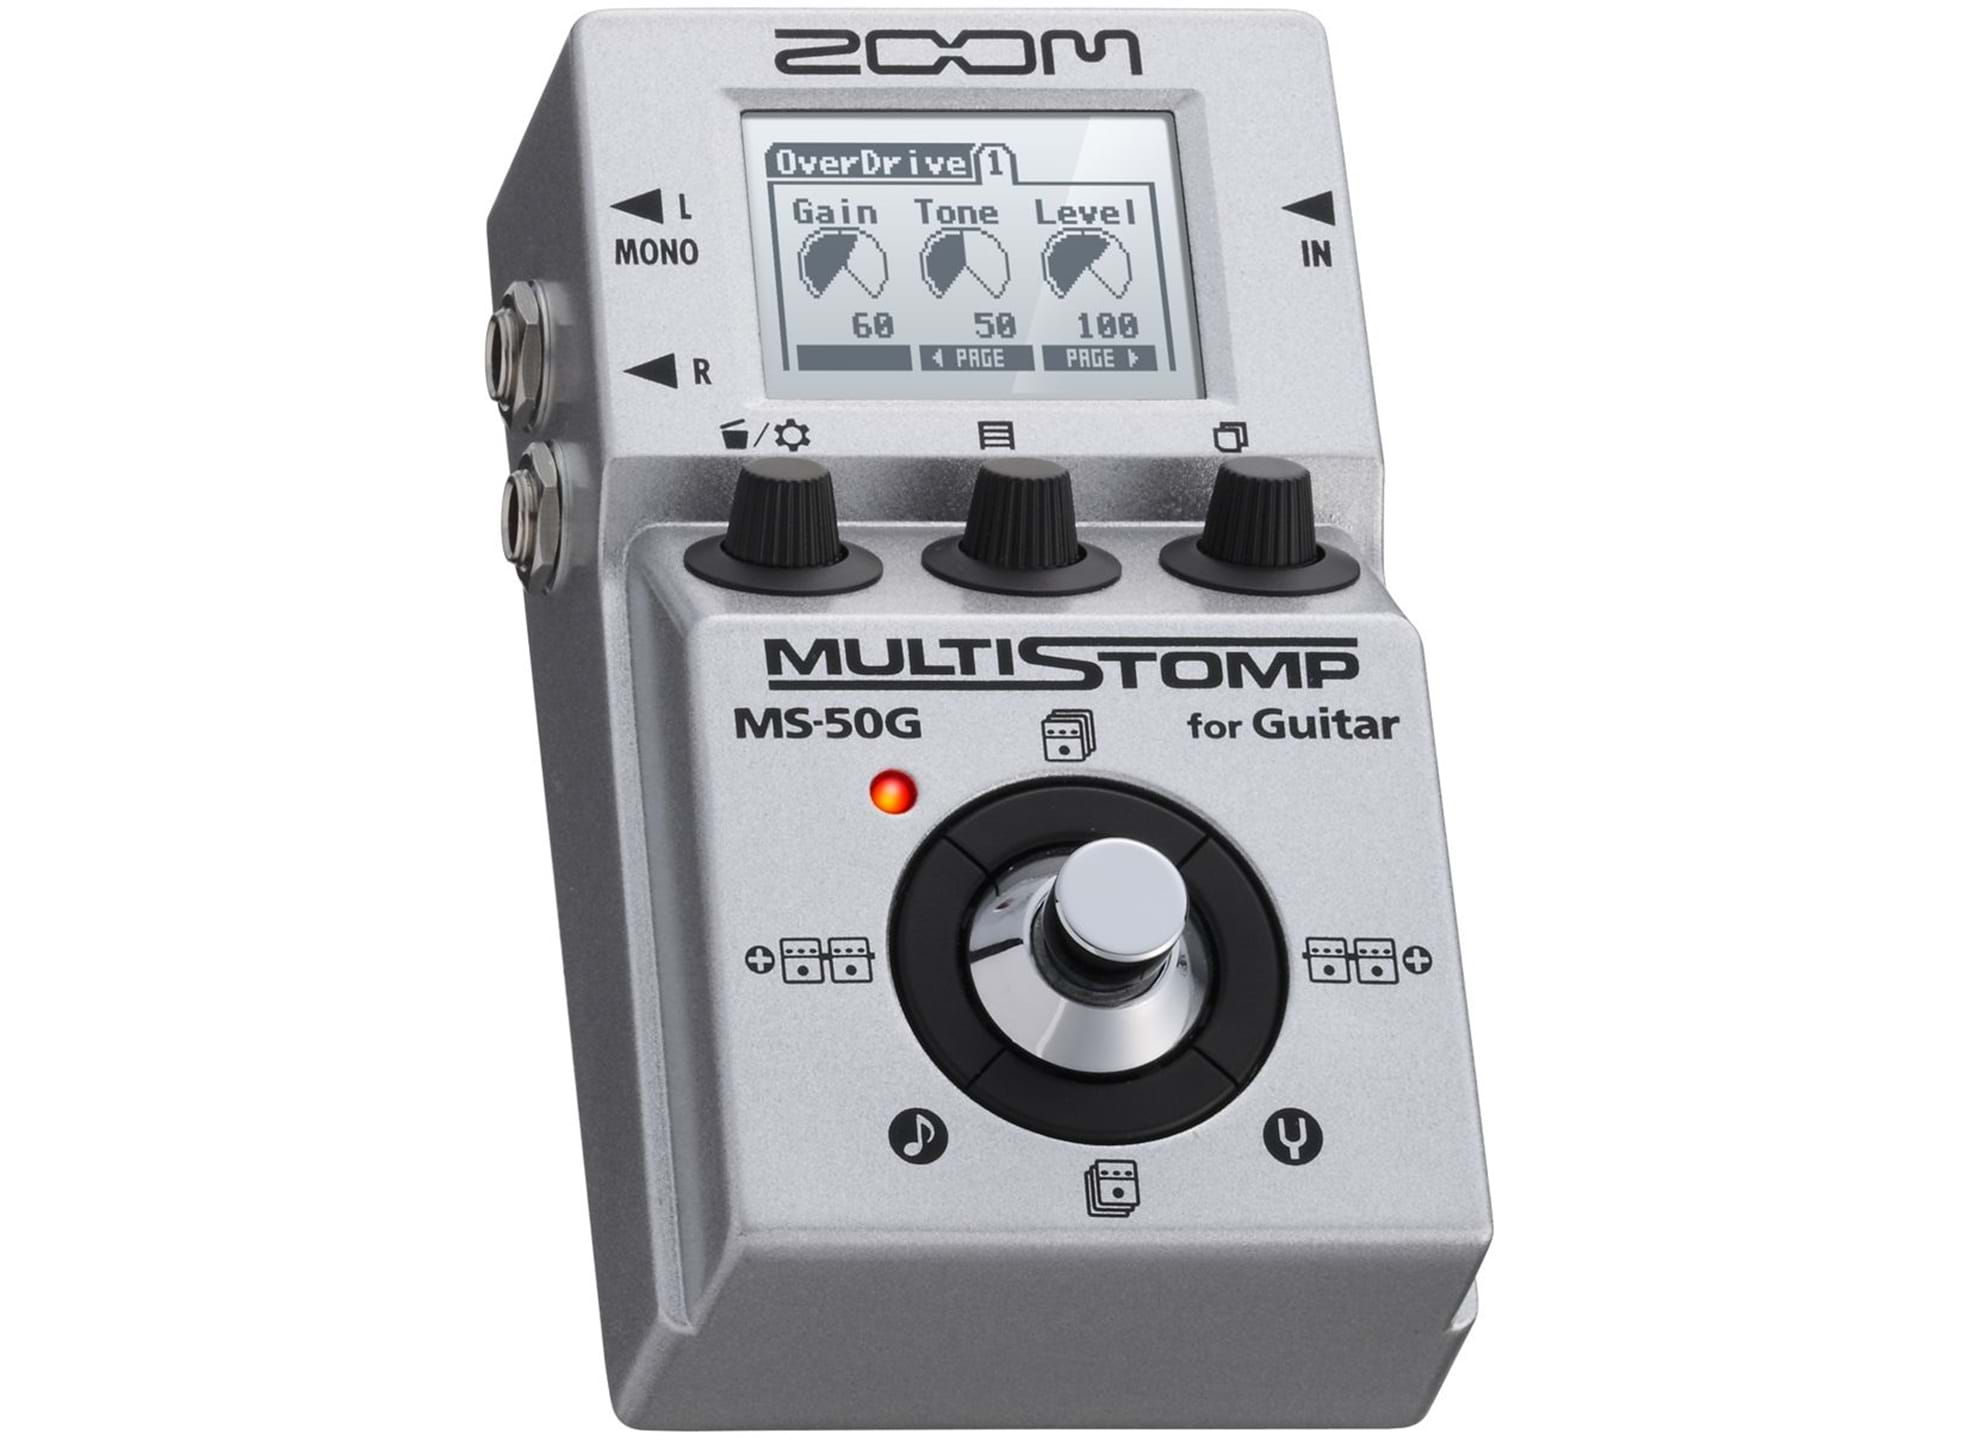 Multistomp MS-50G